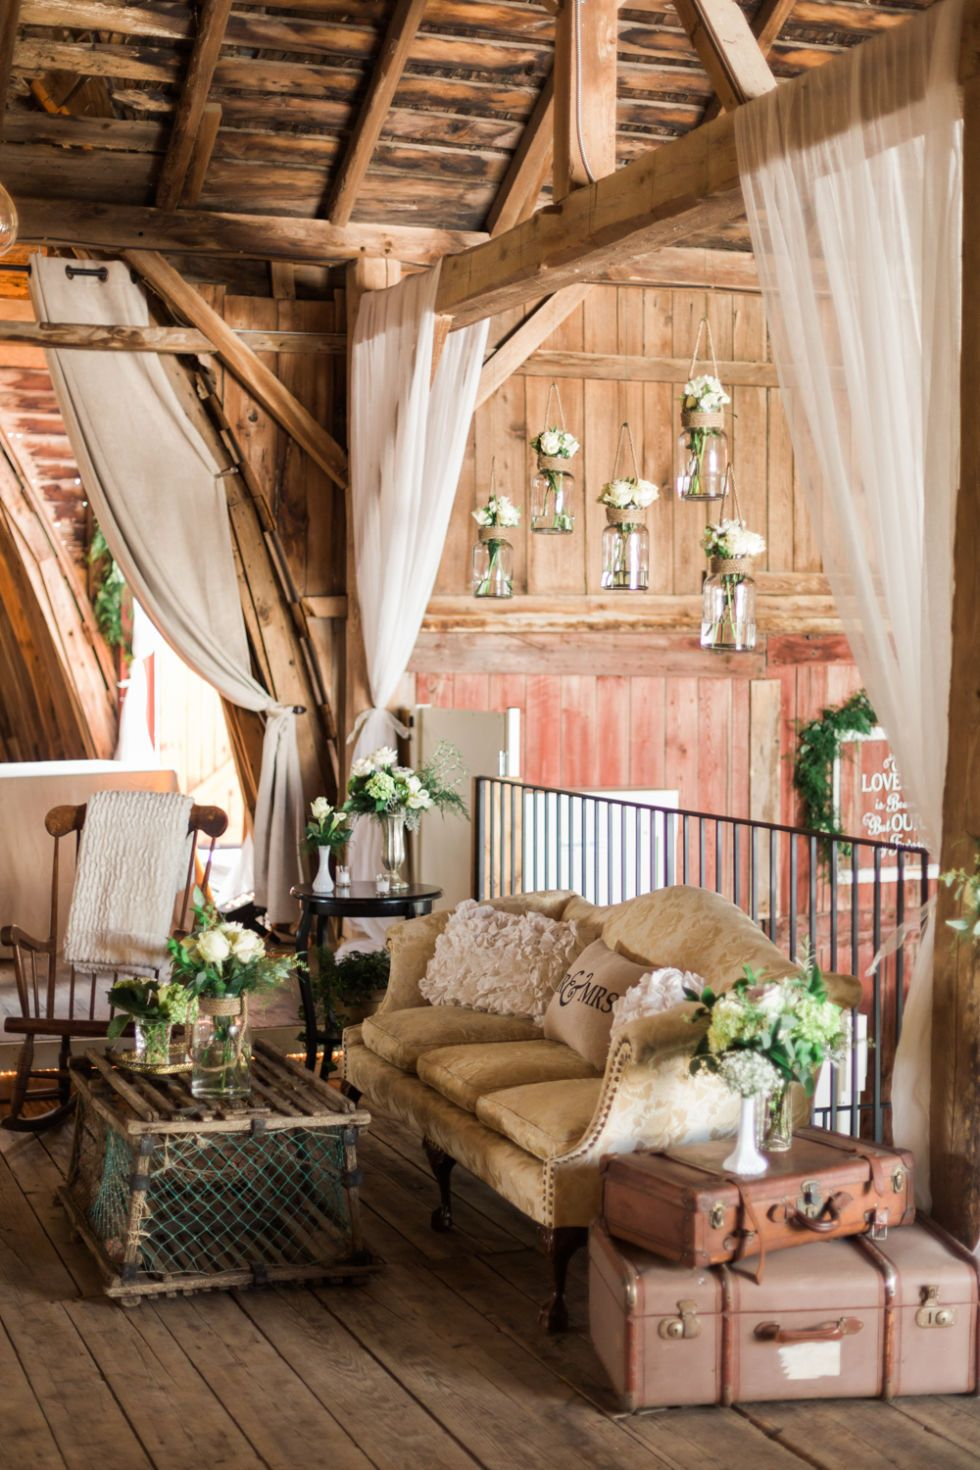 This Restored A Barn So They Could Get Married In It this restored a barn so they could get married in